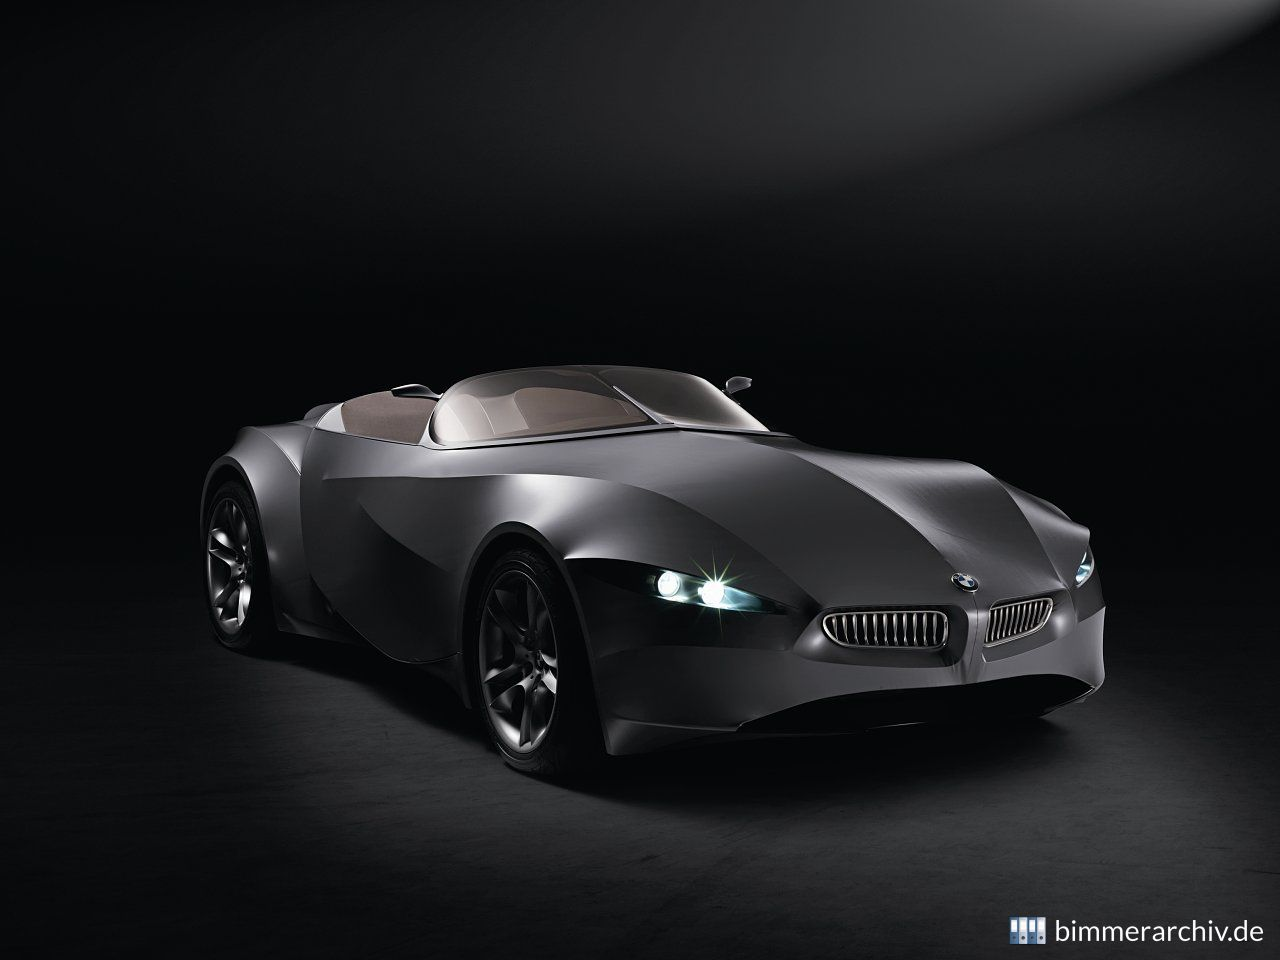 BMW GINA Light Visionsmodell